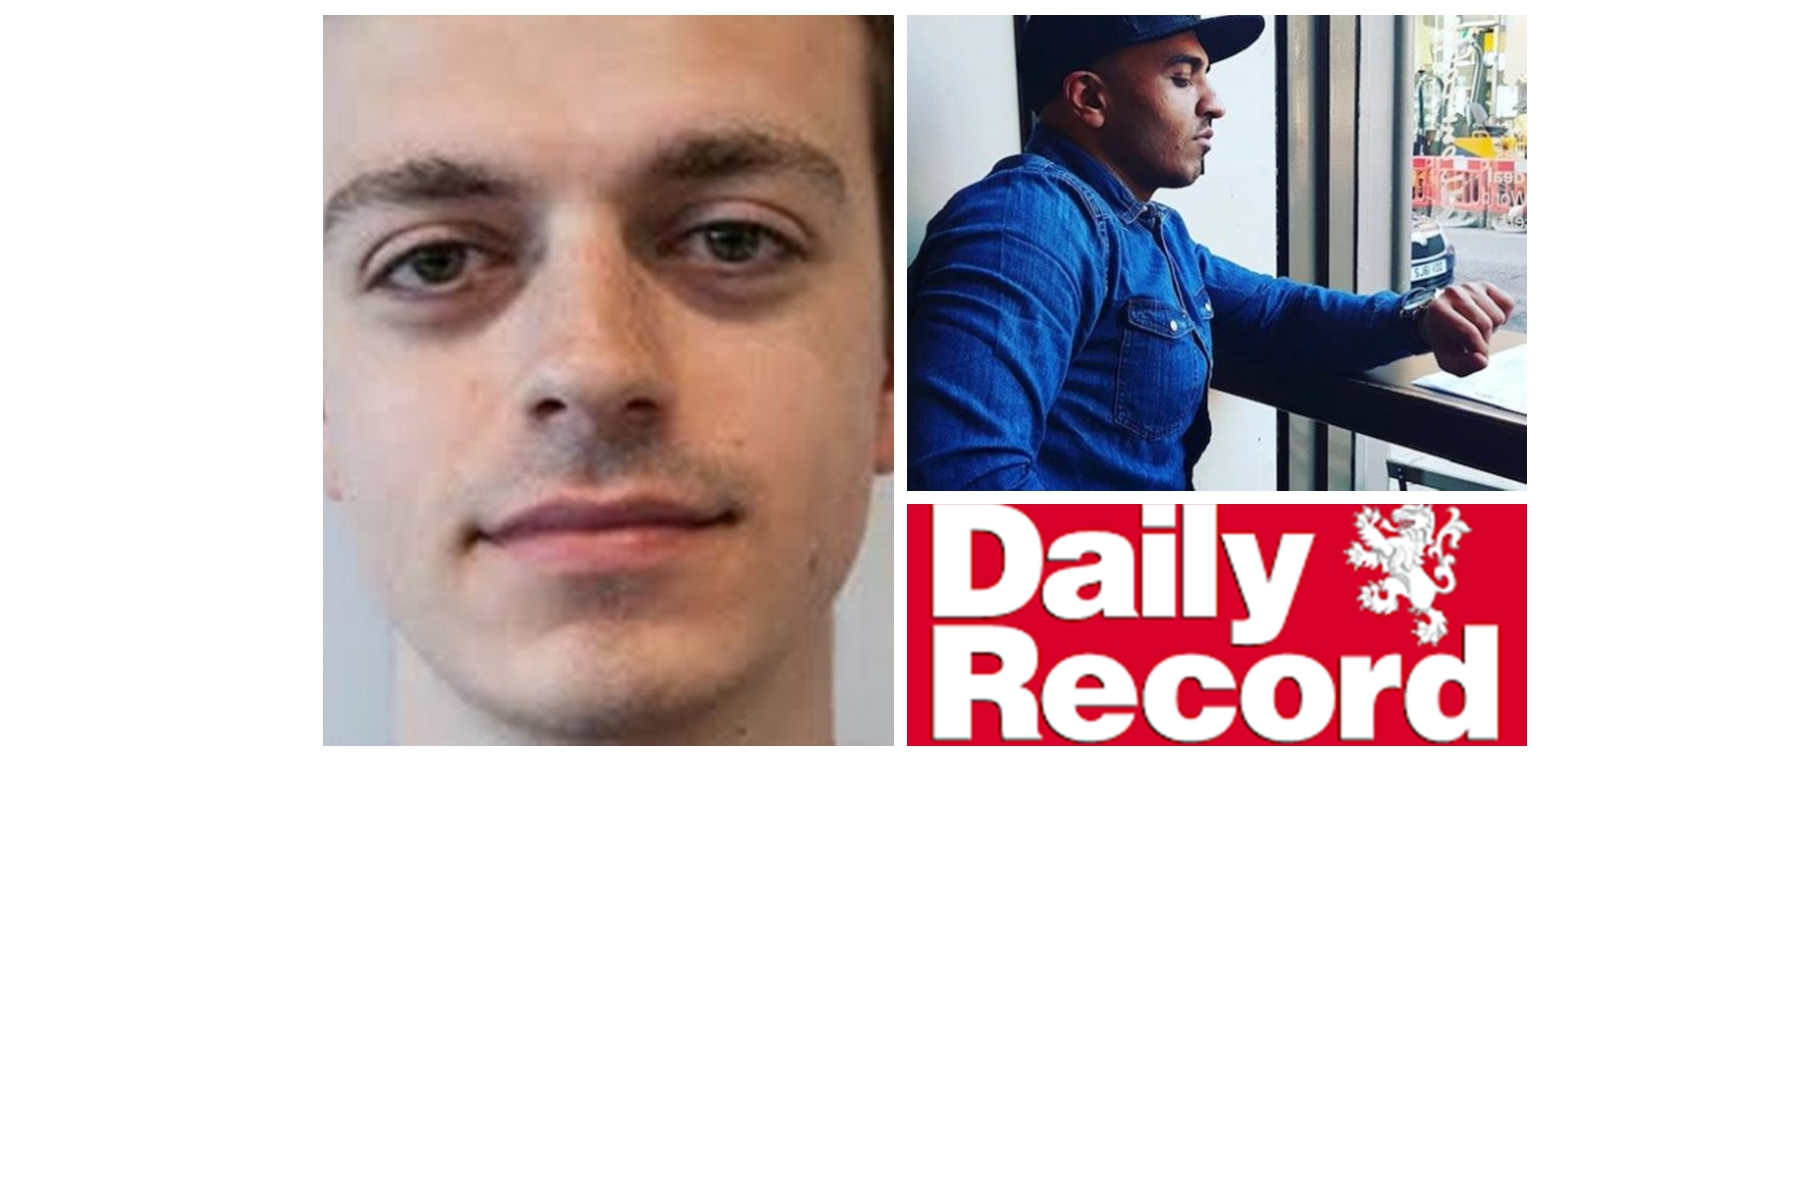 Sleazy Scumbag Reporter Connor Gordon Blatantly Lies About Addy Agame Facing Jail In The Daily Record – Addy Did Not Target Schoolgirls In Glasgow!